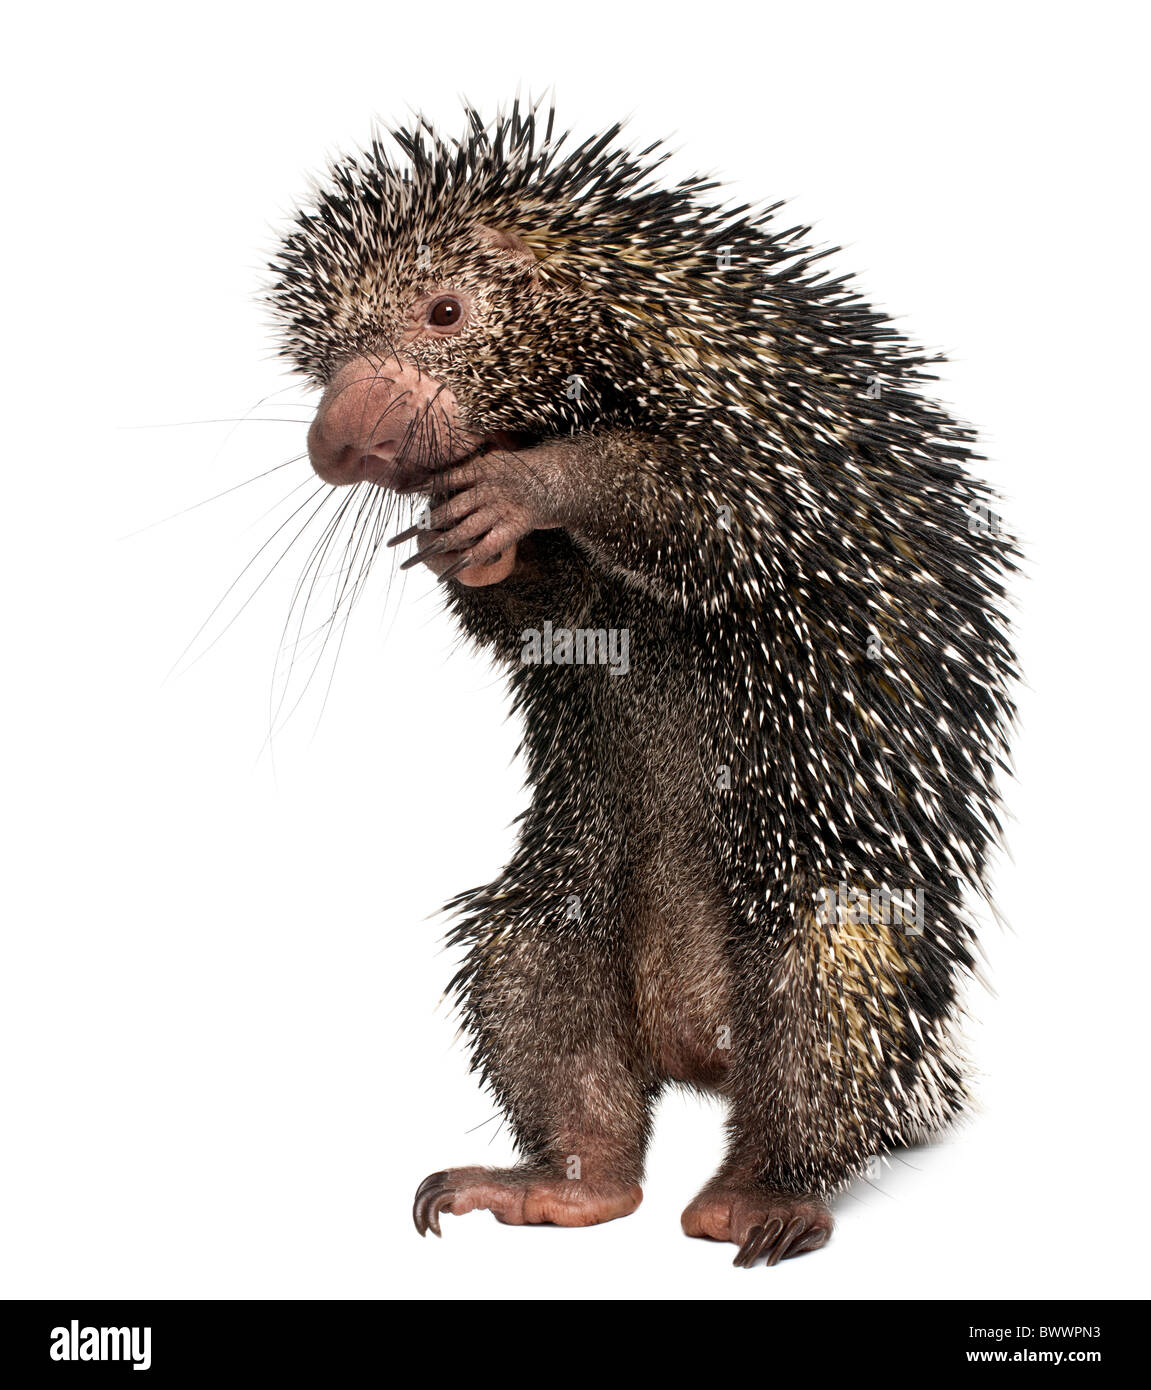 Brazilian Porcupine, Coendou prehensilis, standing in front of white background - Stock Image